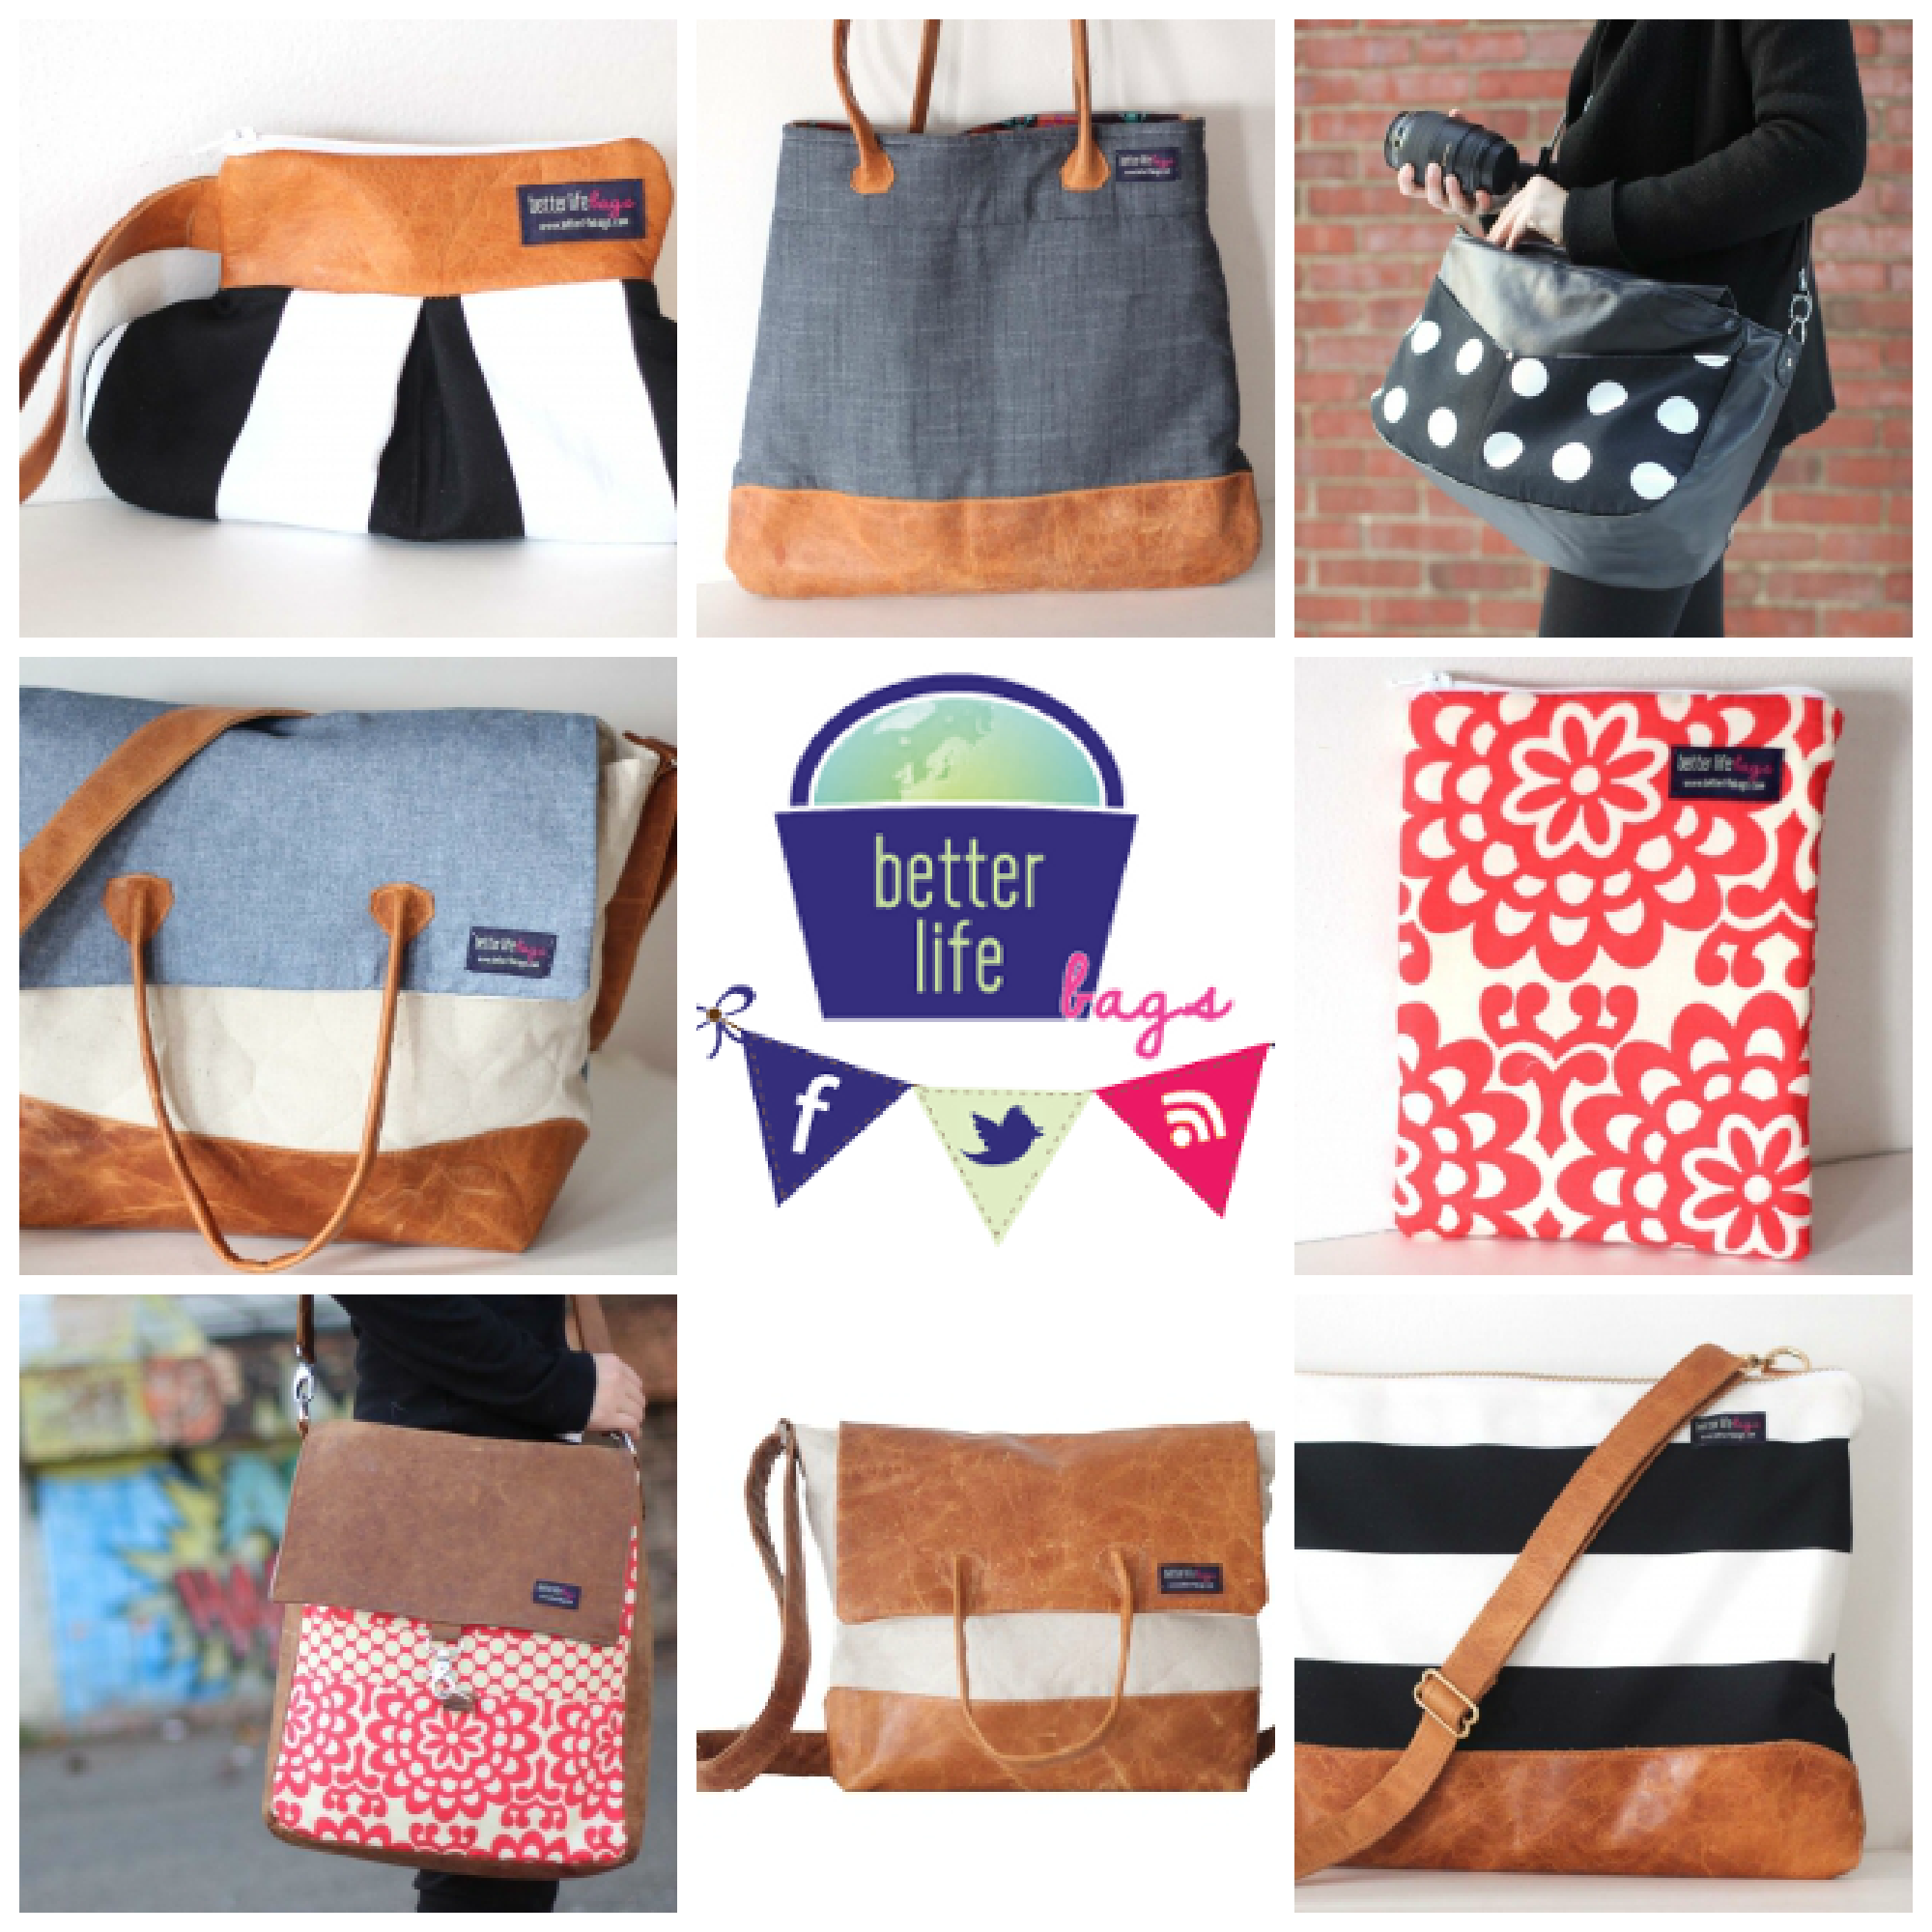 BetterLifeBagscollage